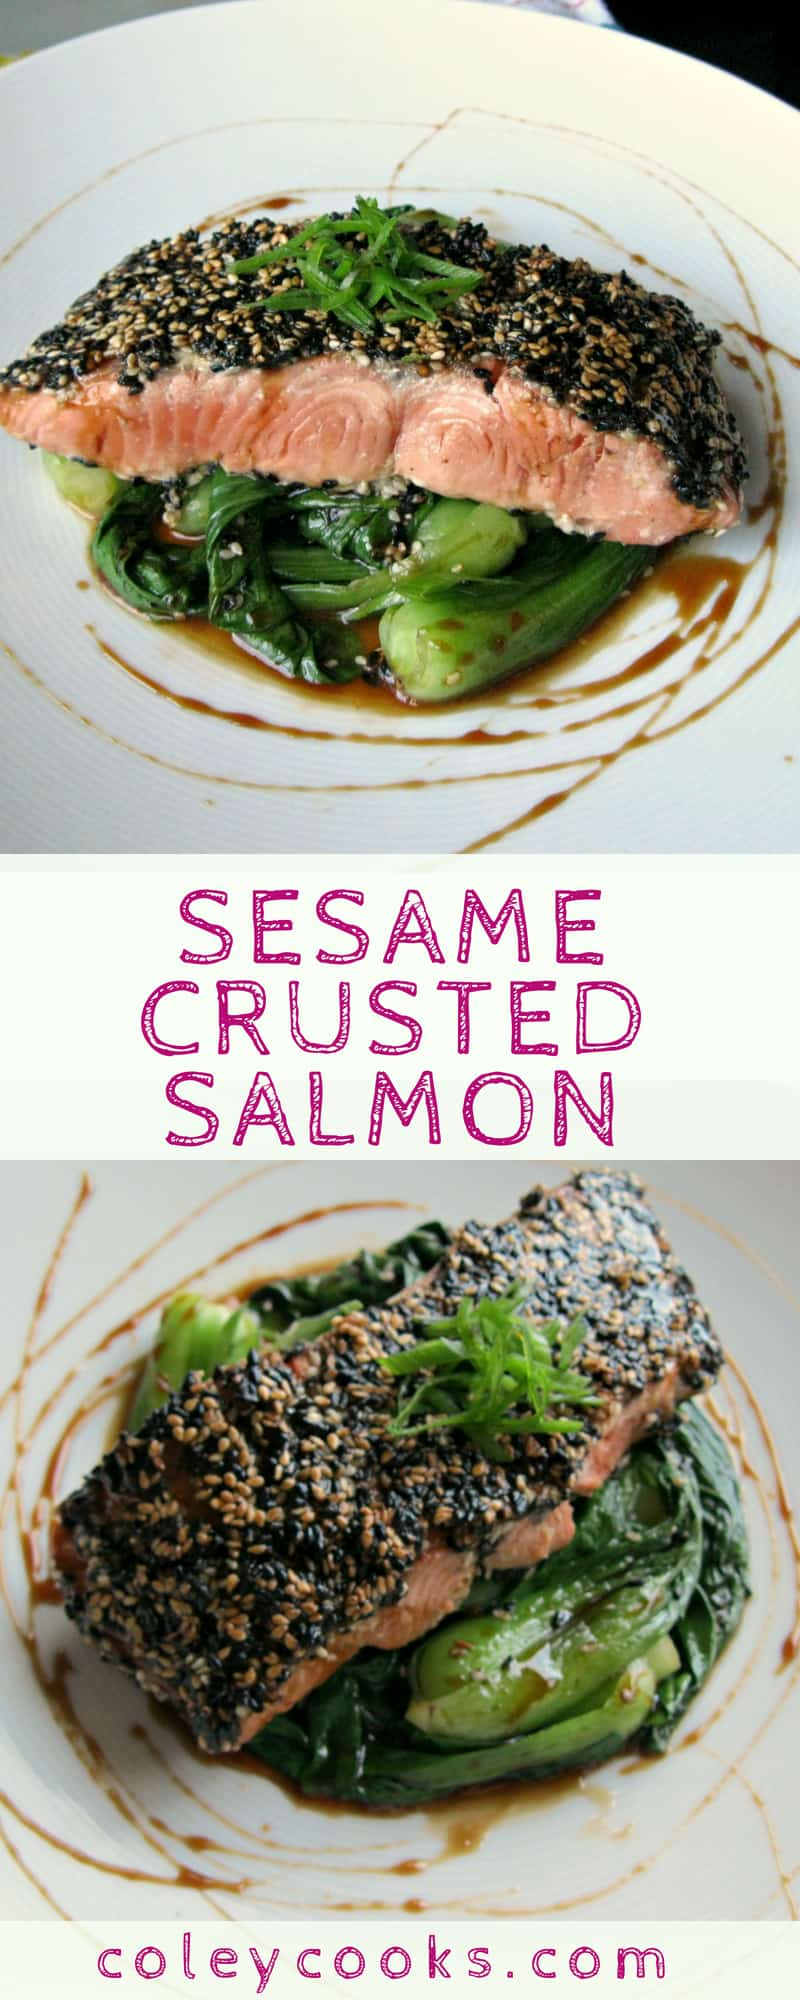 SESAME CRUSTED SALMON | Light and flavorful easy Asian salmon recipe with sweet soy glaze! #easy #salmon #recipe #seafood #fish | ColeyCooks.com